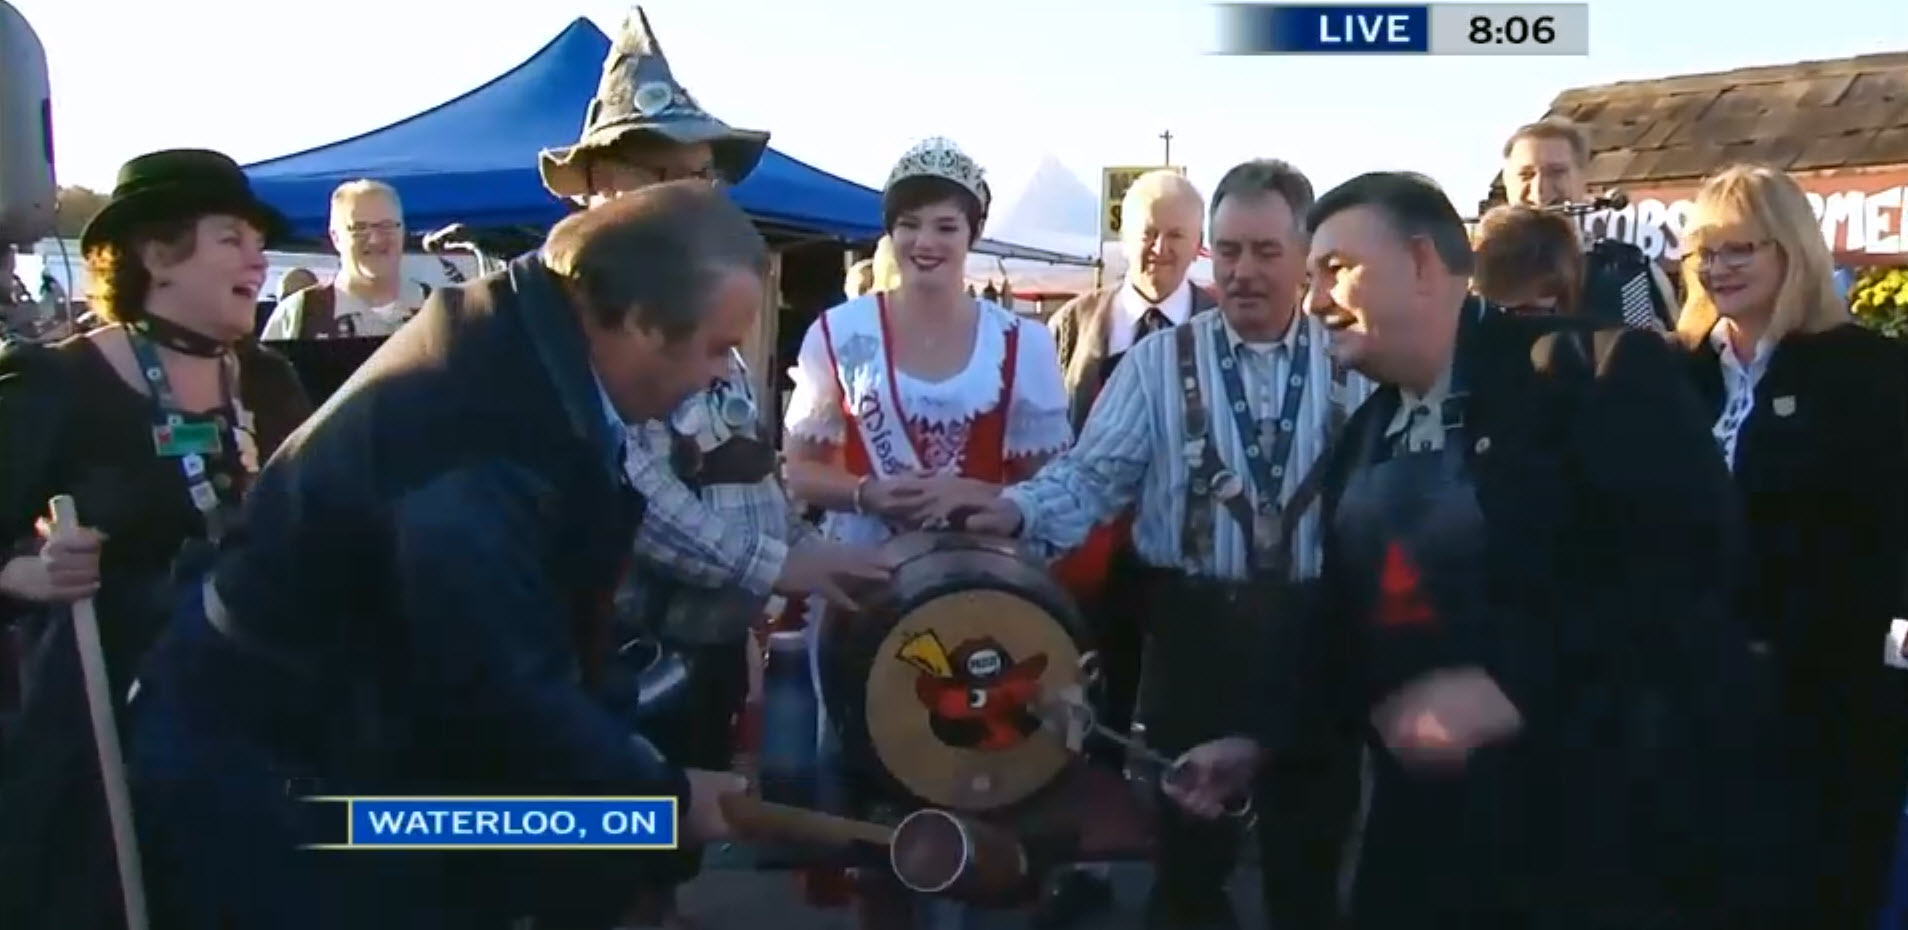 2014-10-09 Canada AM At St. Jacobs Farmers Market 03